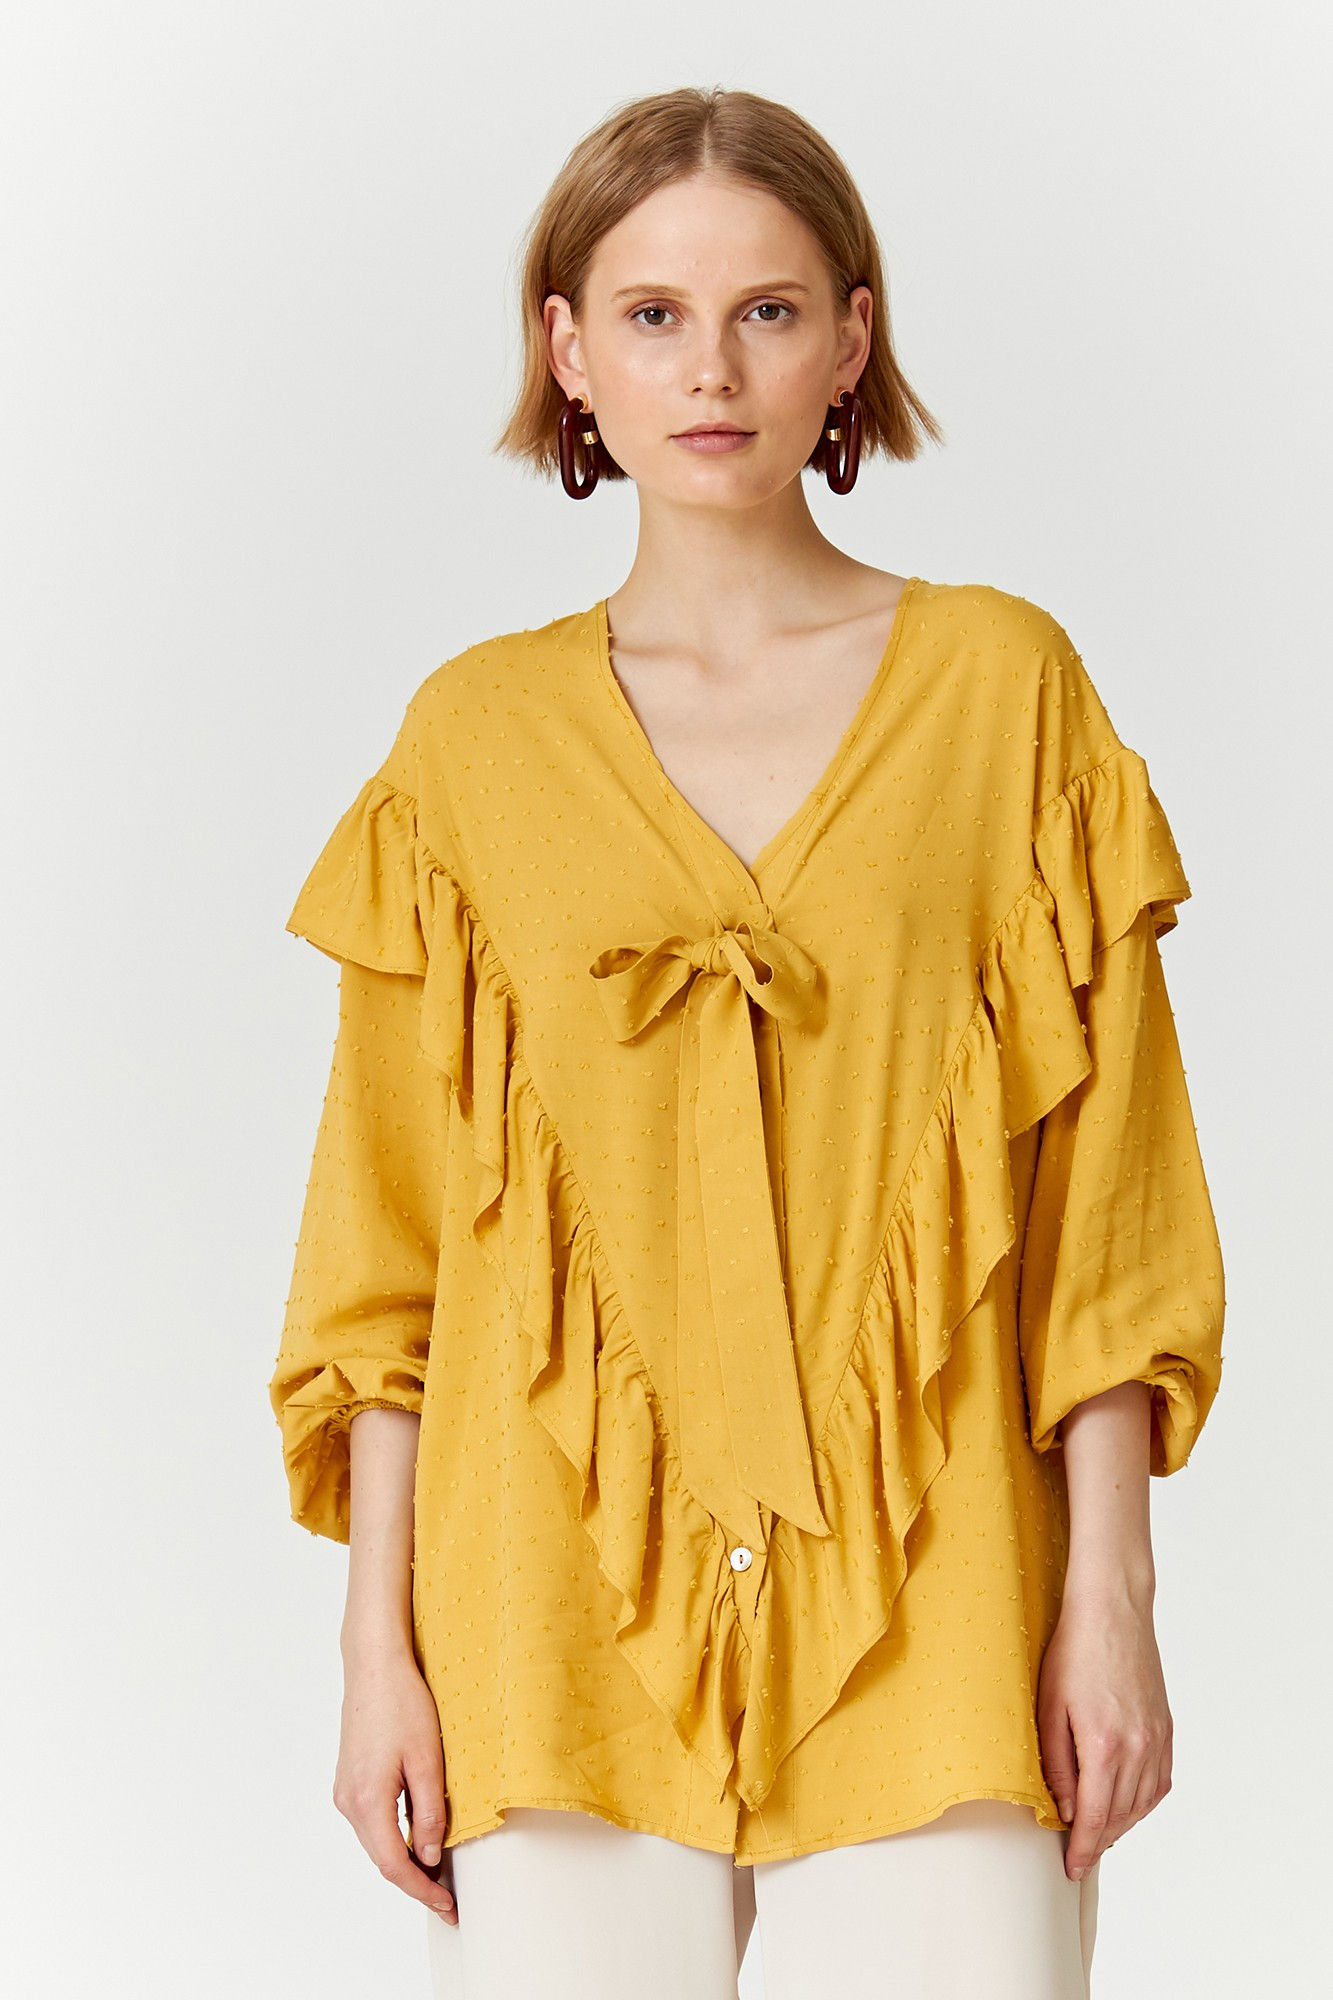 SISTER BABETTE YELLOW SHIRT